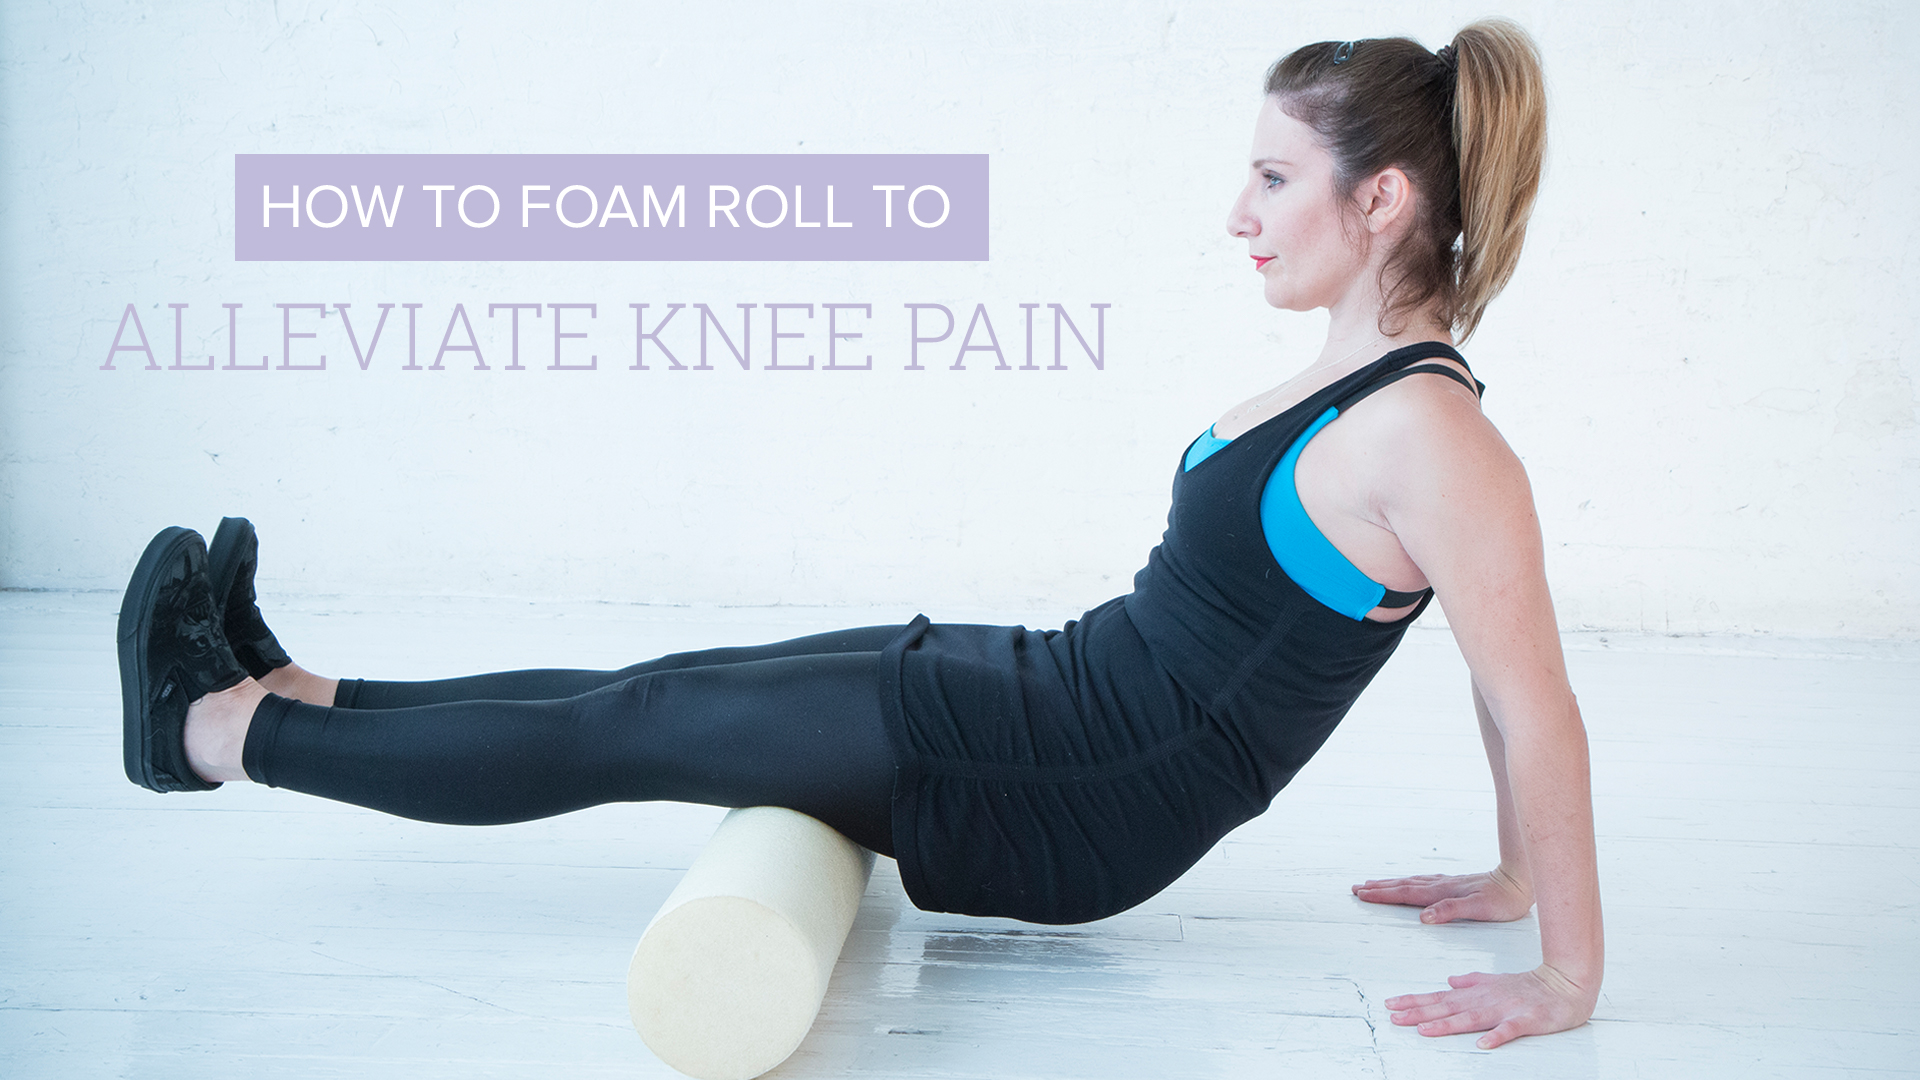 3 Stretches To Alleviate Knee Pain